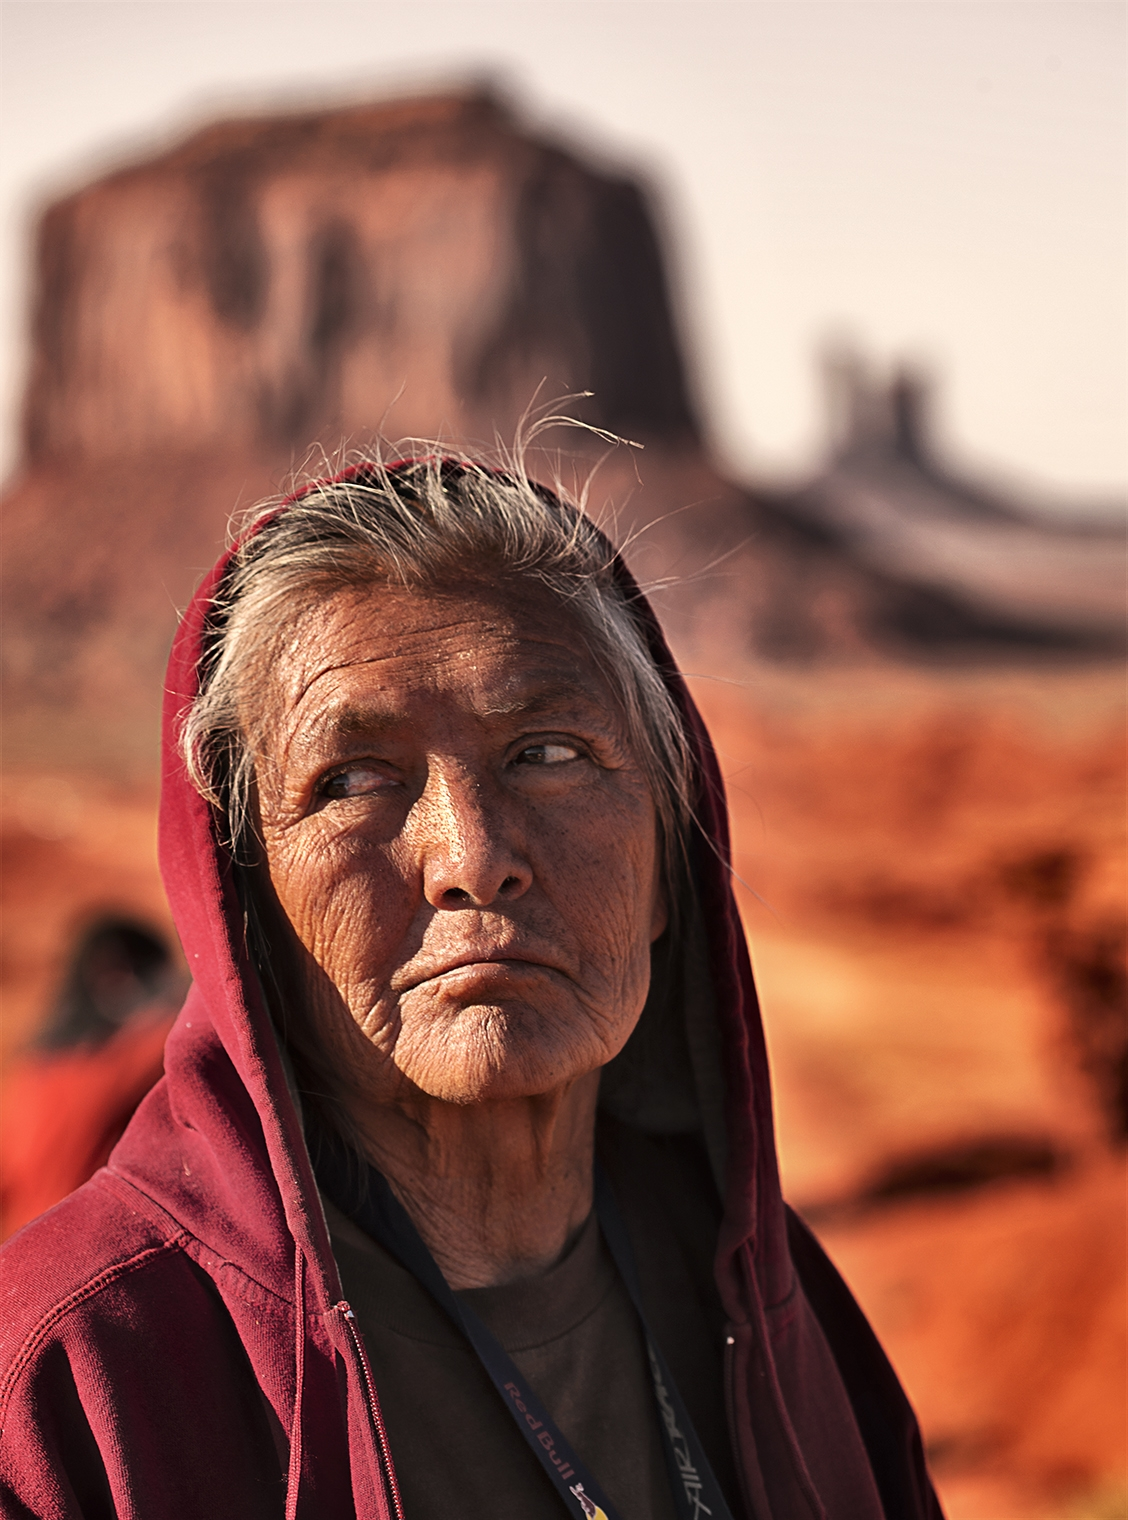 Navajo Nation, utah - photography - pierocefaloni | ello